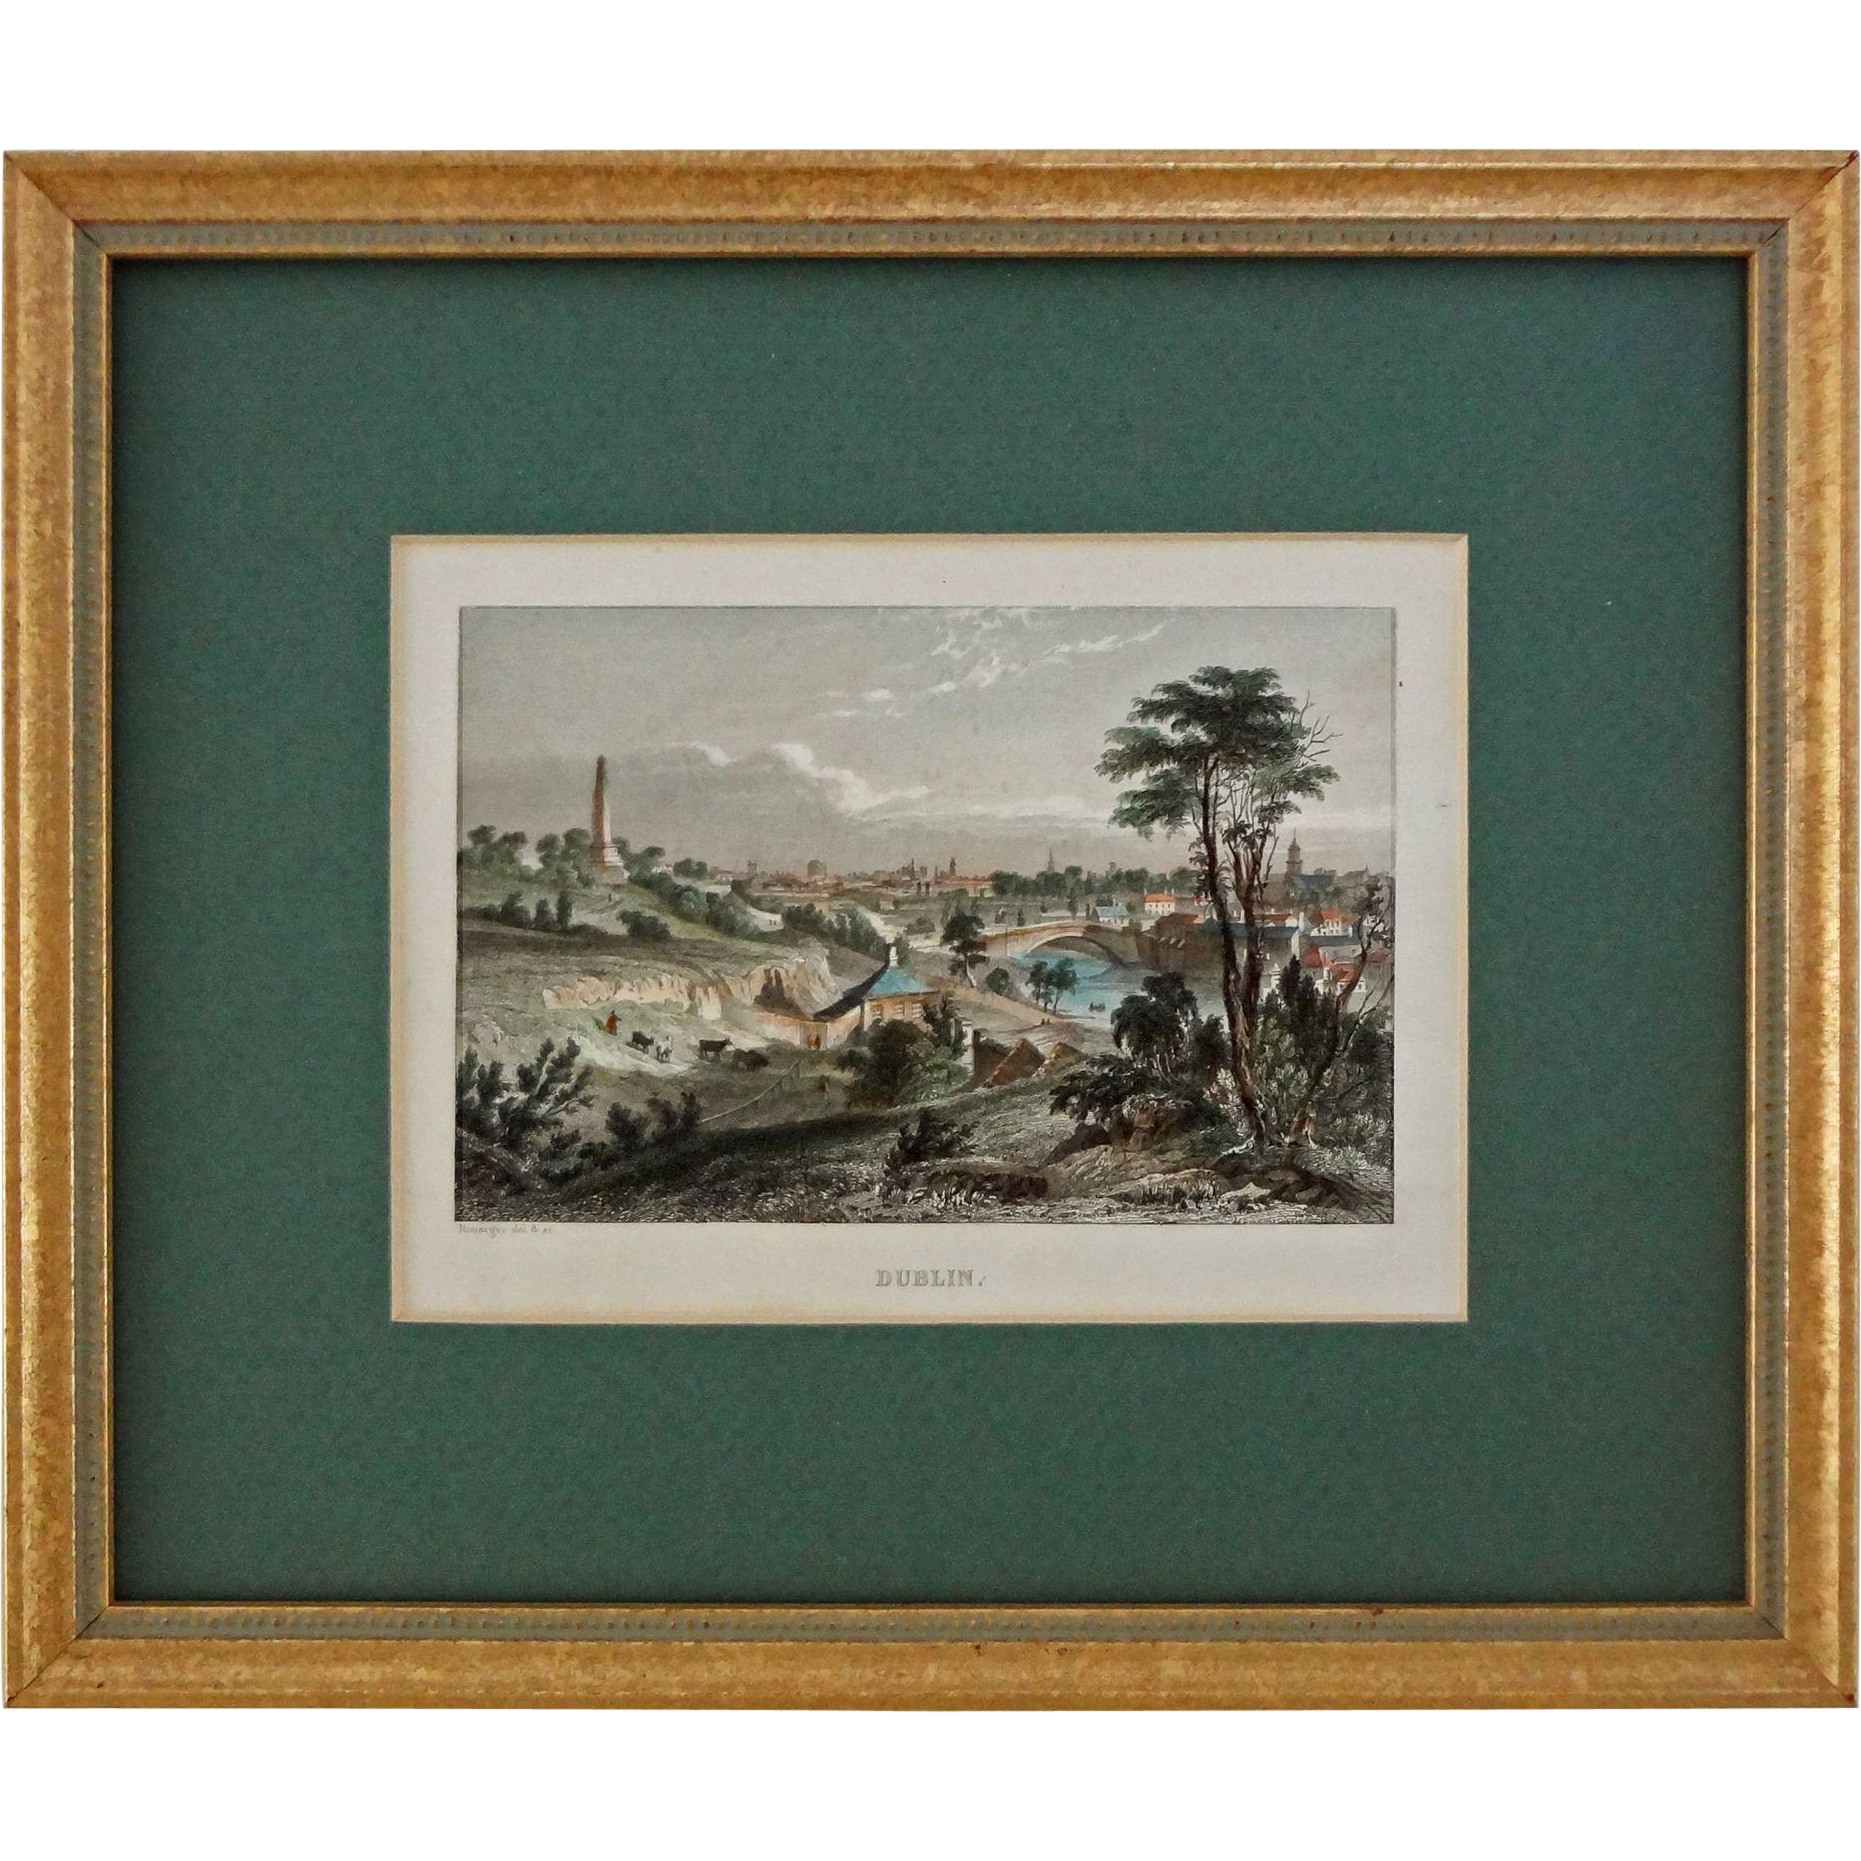 Dublin Antique Color Steel Engraving by Rouargue after Petrie - 19th Century, England